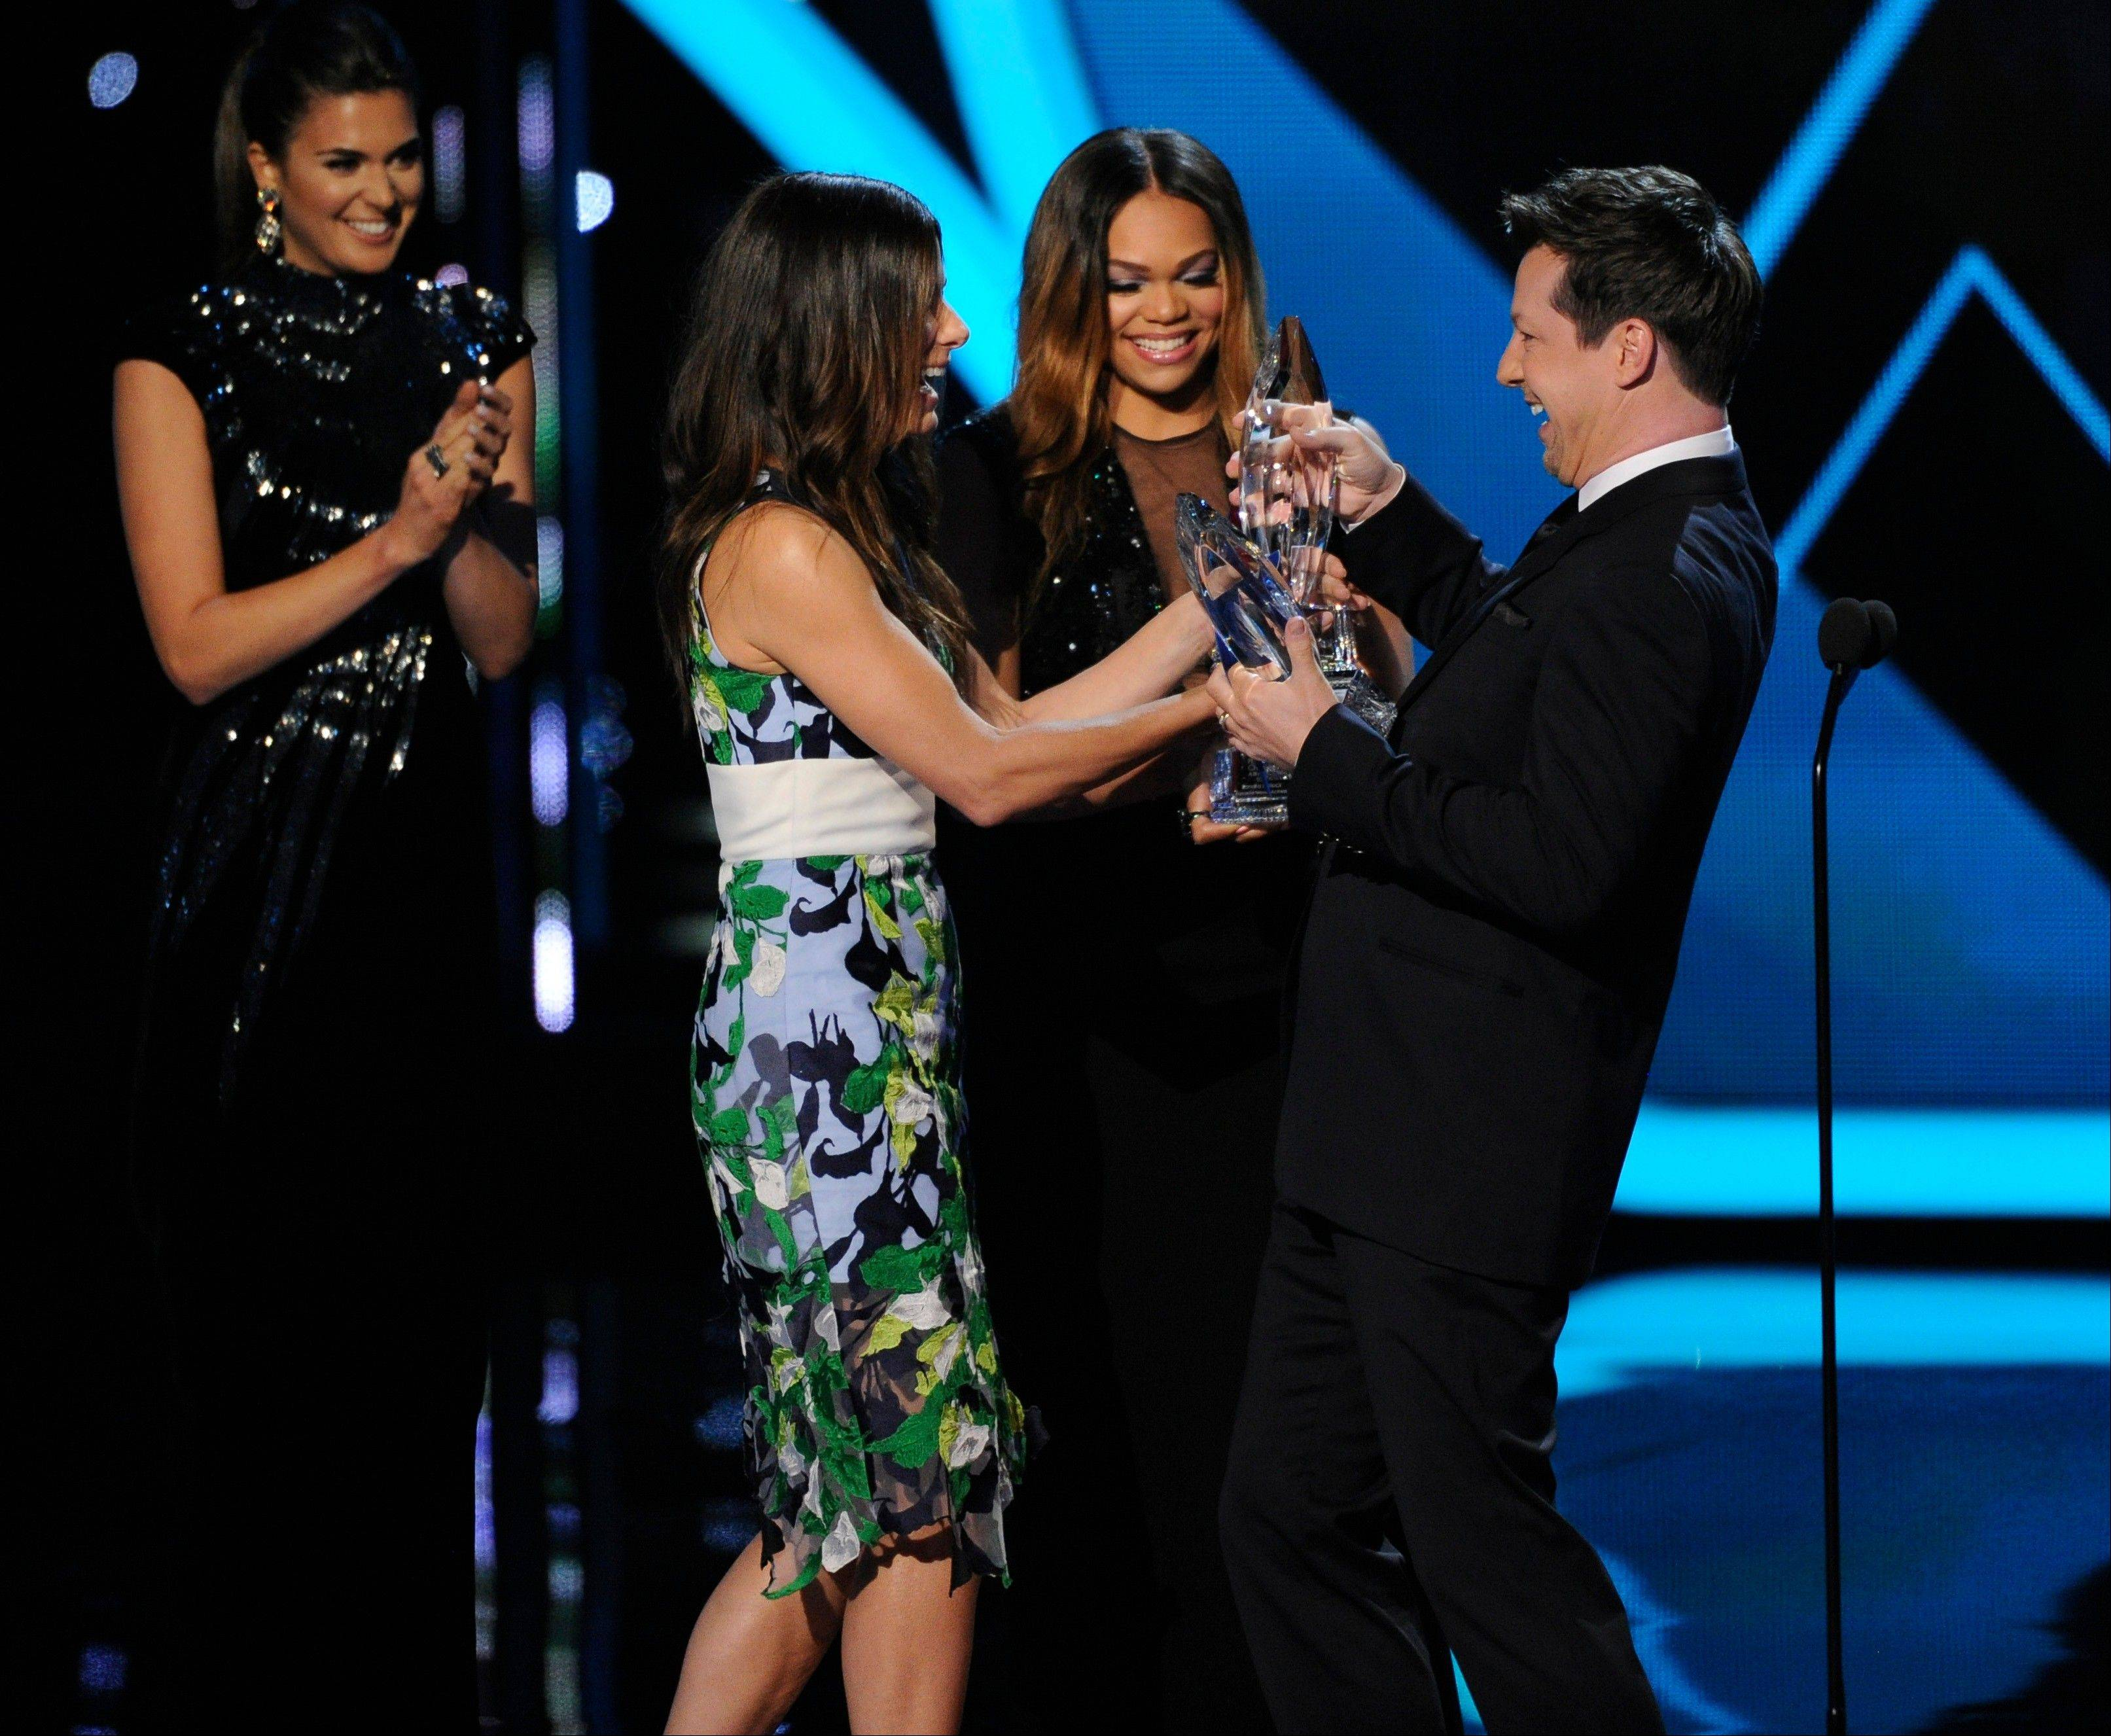 Associated PressSean Hayes, right, presents the award for favorite movie actress to Sandra Bullock, second left, at the 40th annual People's Choice Awards at the Nokia Theatre L.A. Live on Wednesday, Jan. 8, 2014, in Los Angeles.